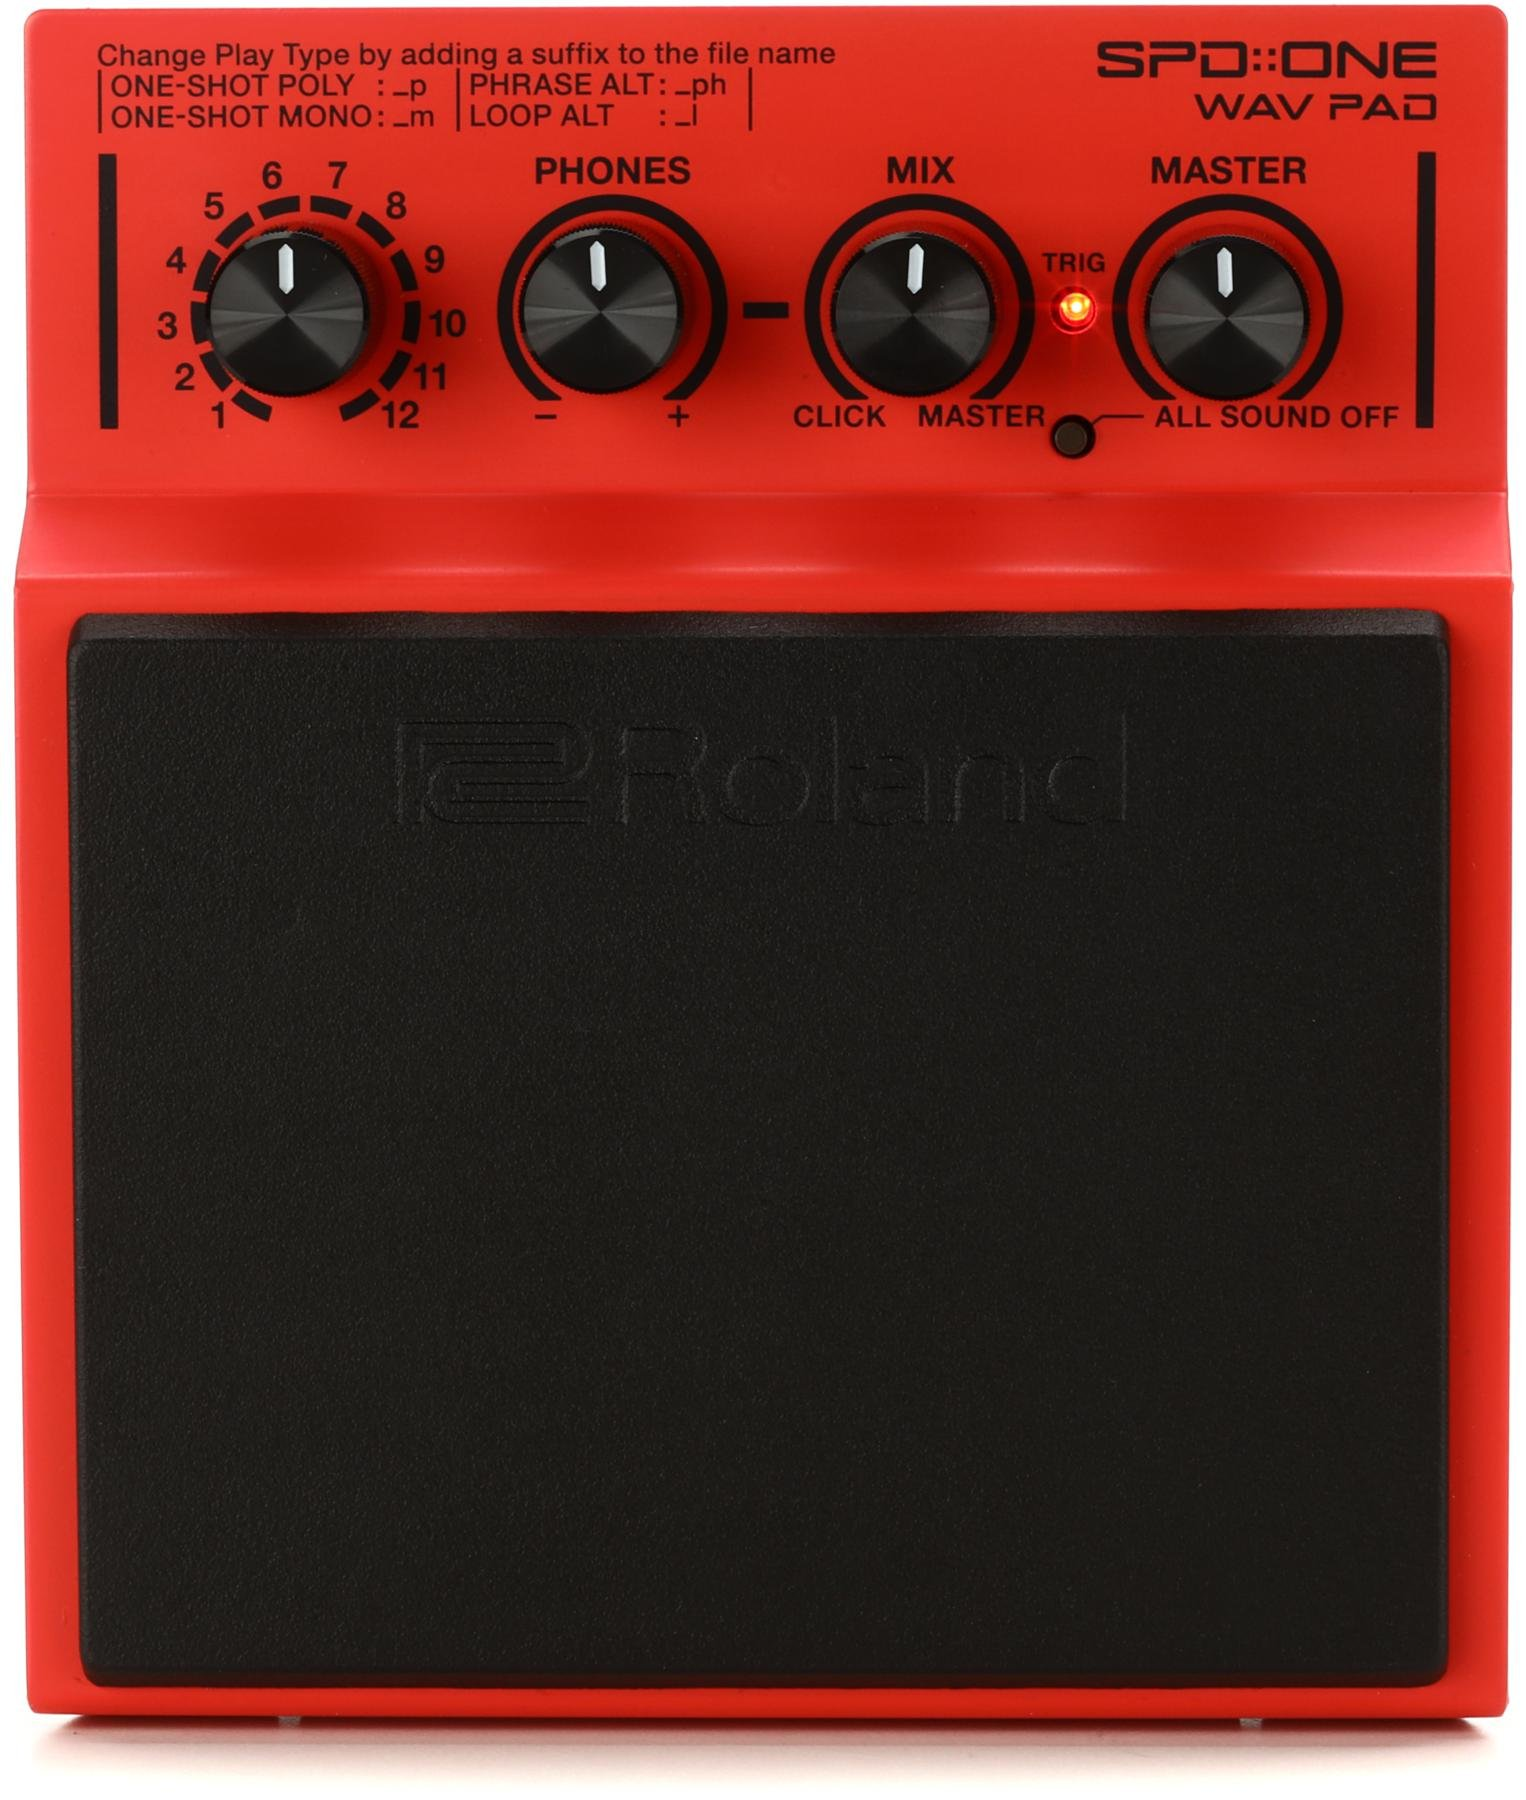 Roland SPD-One Drum Pad - Sampler | Sweetwater